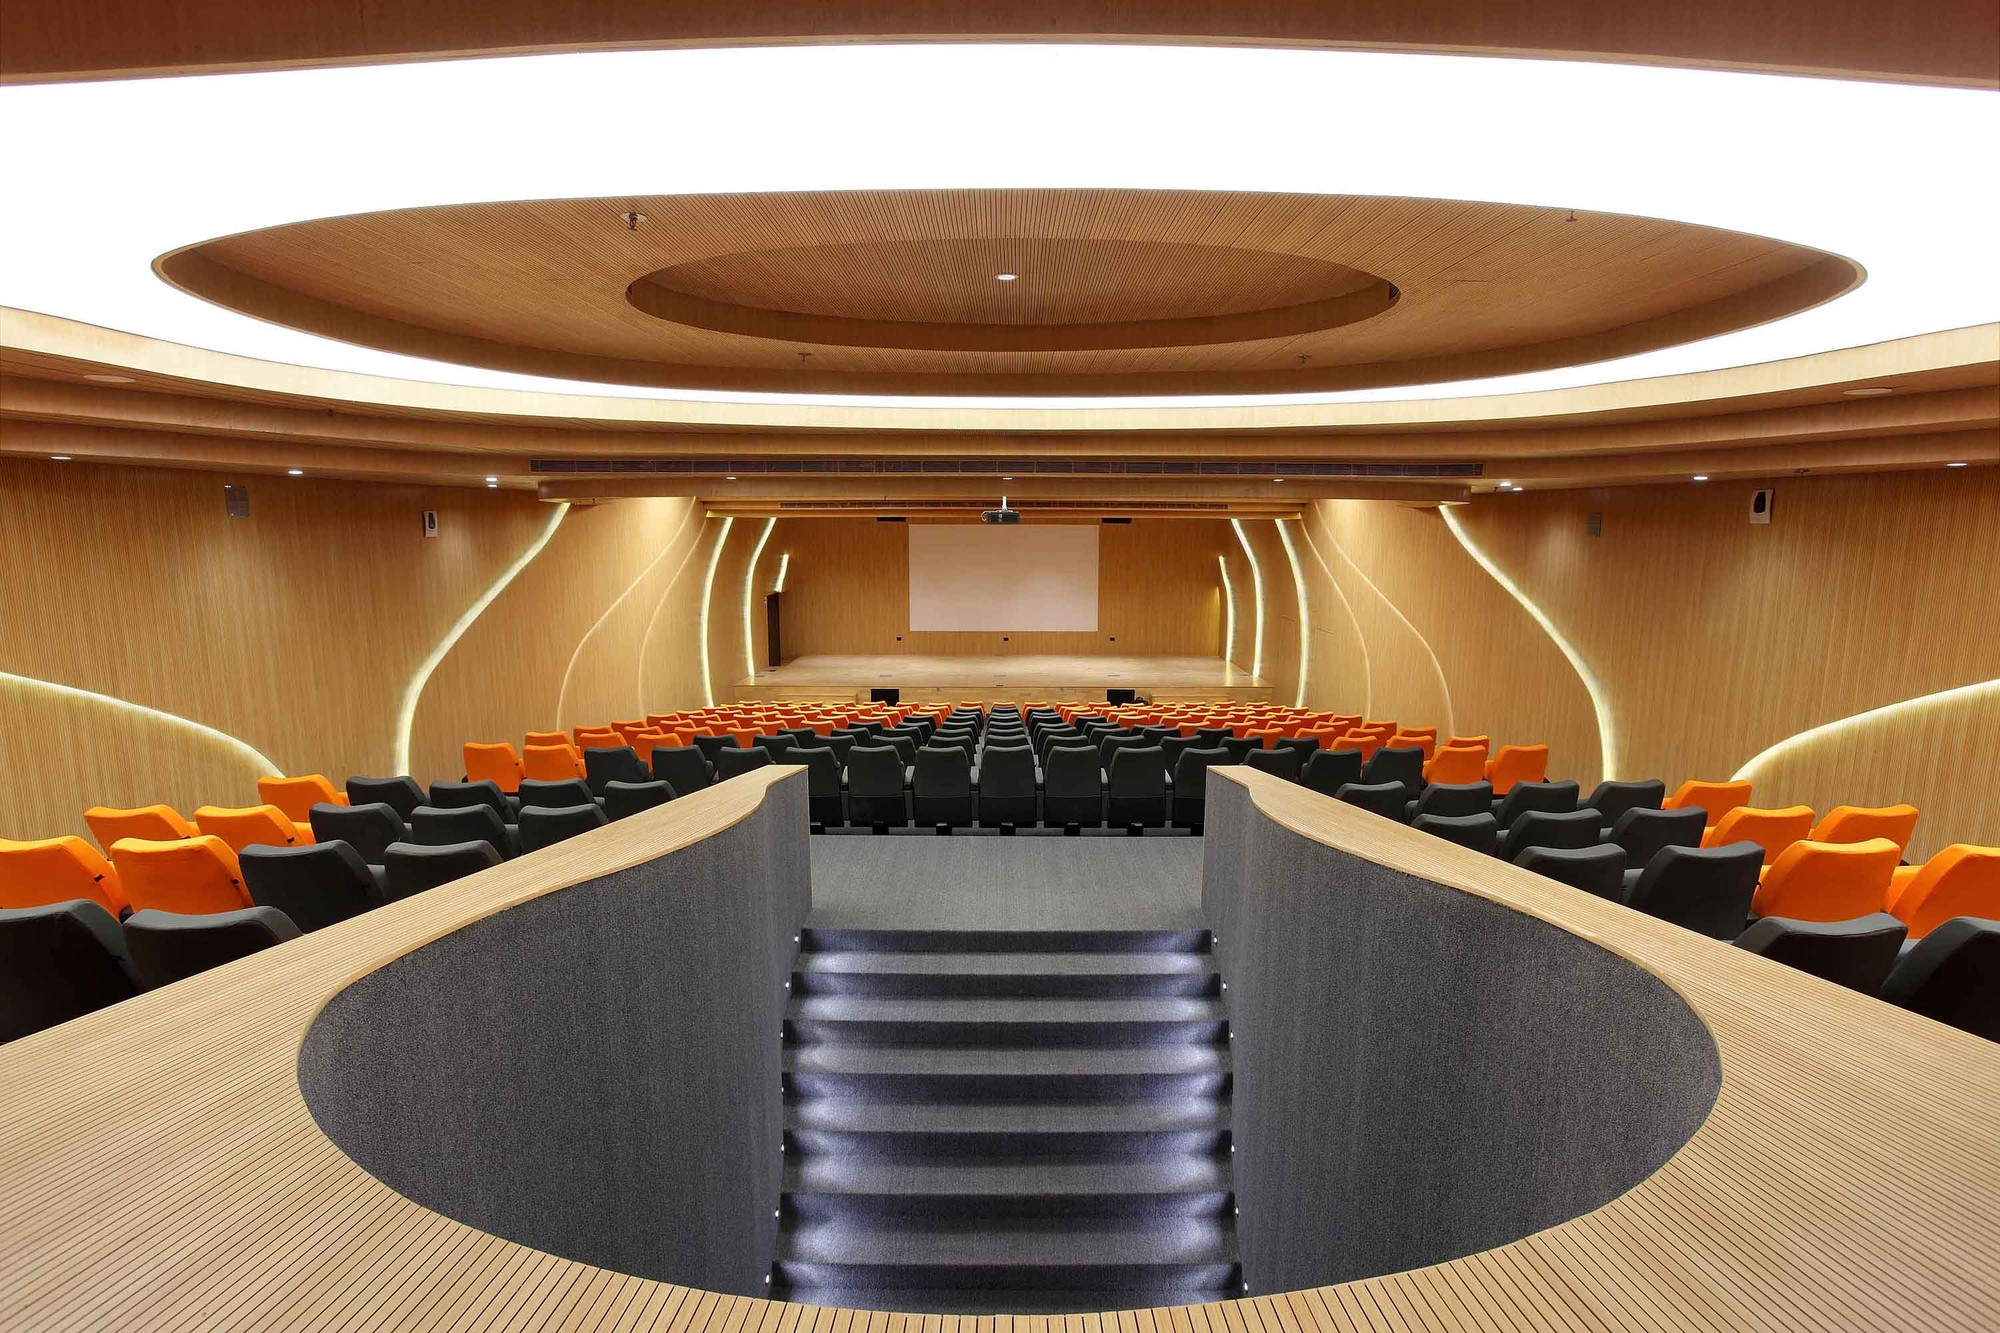 auditorium design case study It's the heart of the venue and when it's designed with flair and technical skill, an auditorium makes every performance memorable at theatreplan, we balance the demands of audiences and performers with the practicalities of sightlines, circulation and seating – all within the architect's aesthetic.